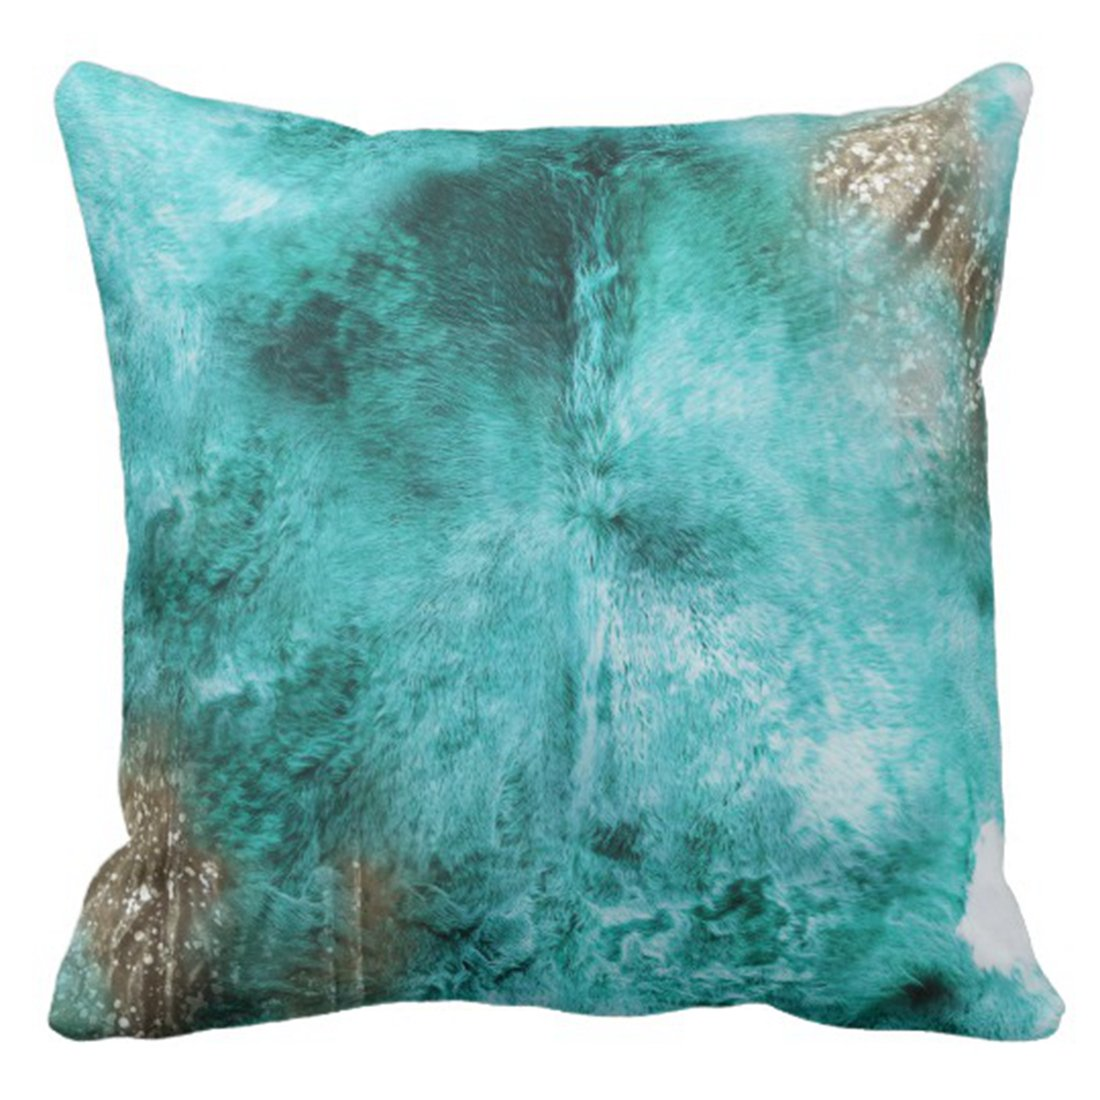 Throw Pillow Cover Turquoise Brown and White Exotic Cowhide Print ative Pillow Case Tribal Home Square 18x18